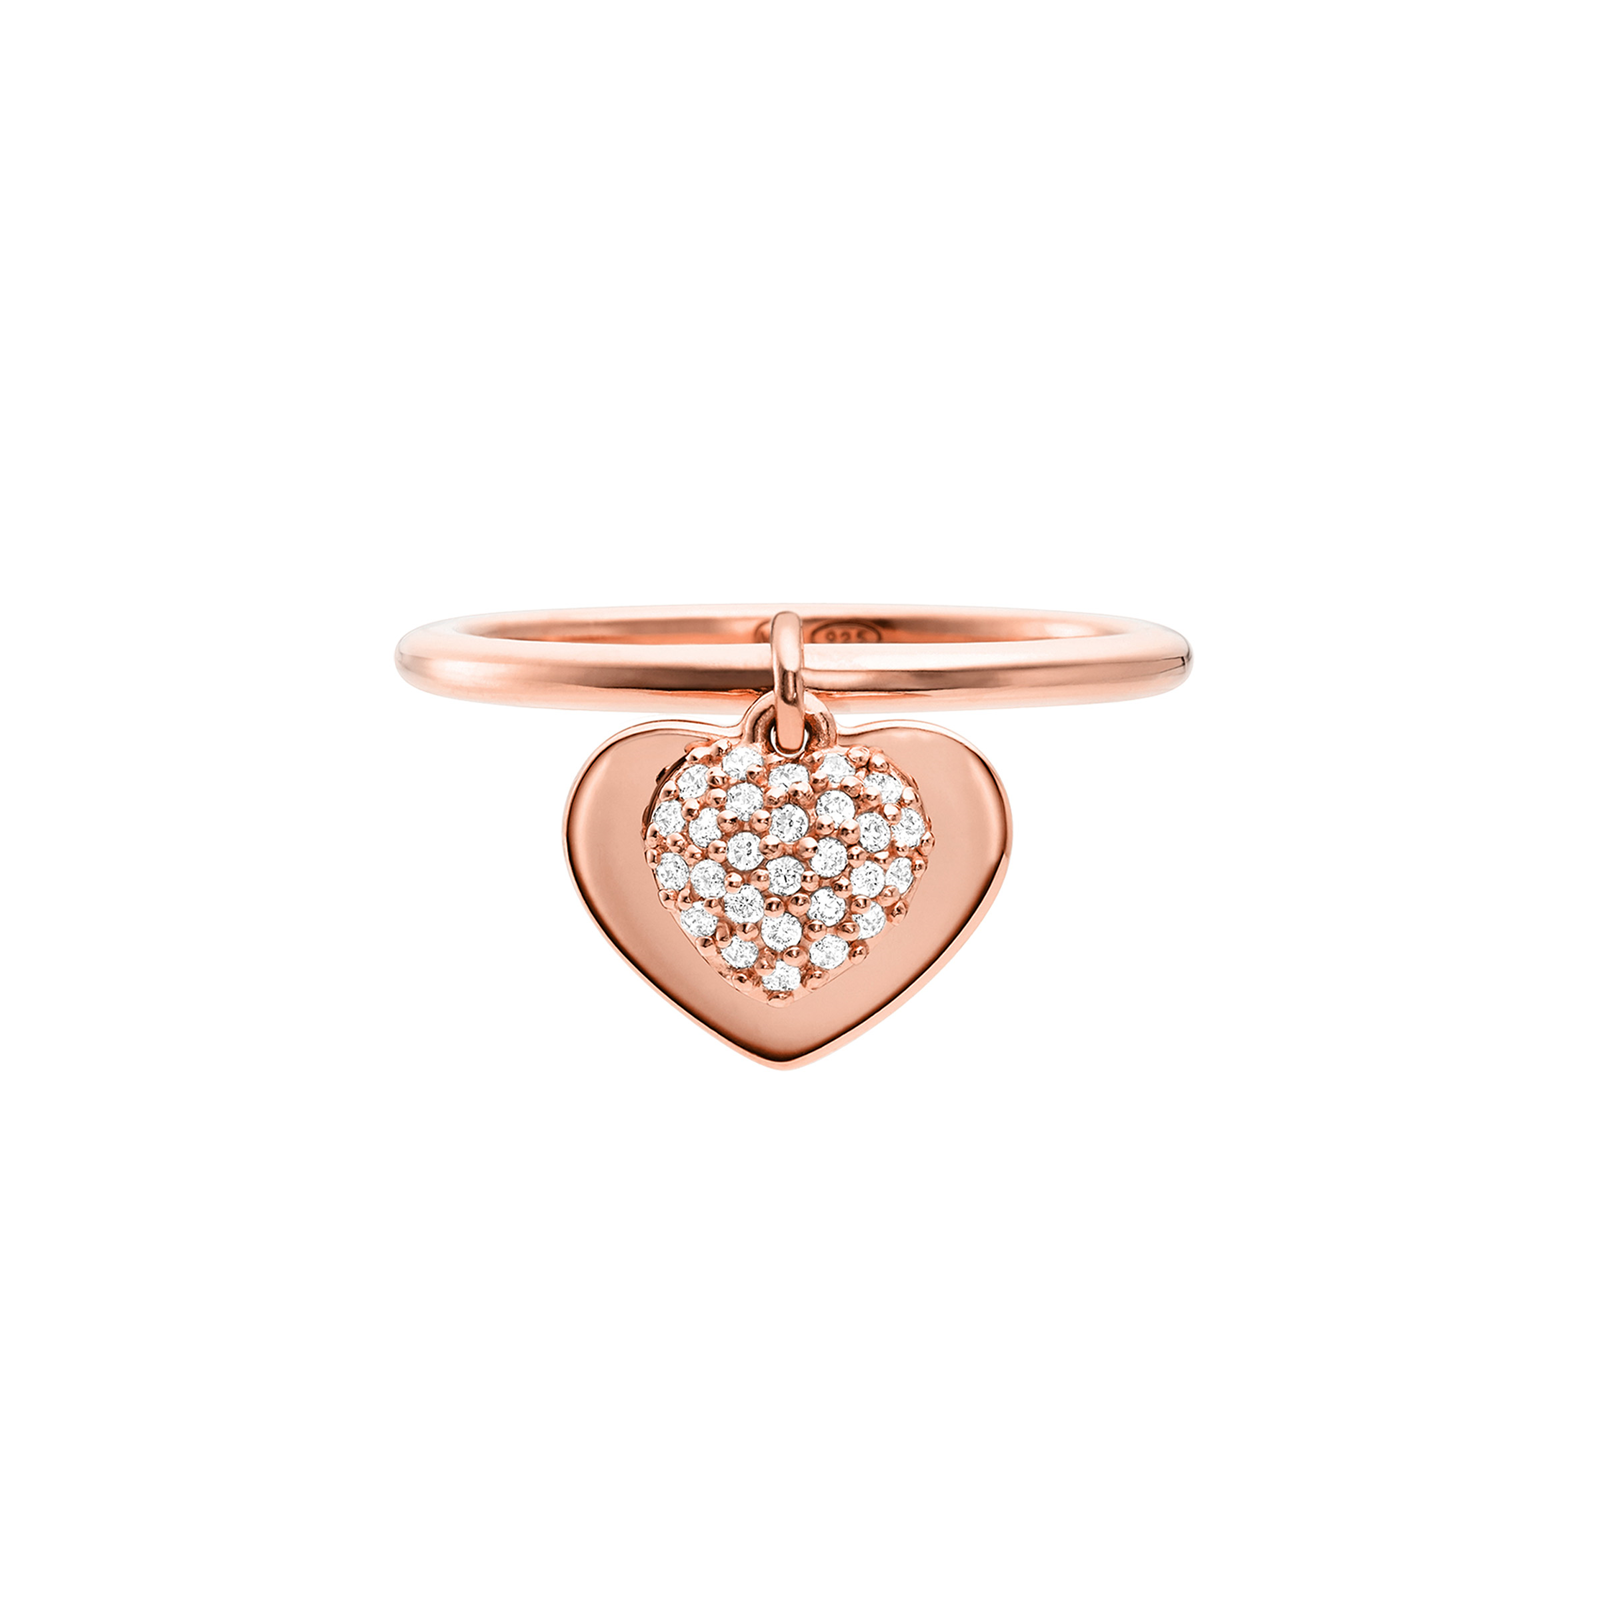 42de2a6510d786 Michael Kors Love 14ct Rose Gold Plated Heart Duo Ring Size P | Rings |  Jewellery | Goldsmiths